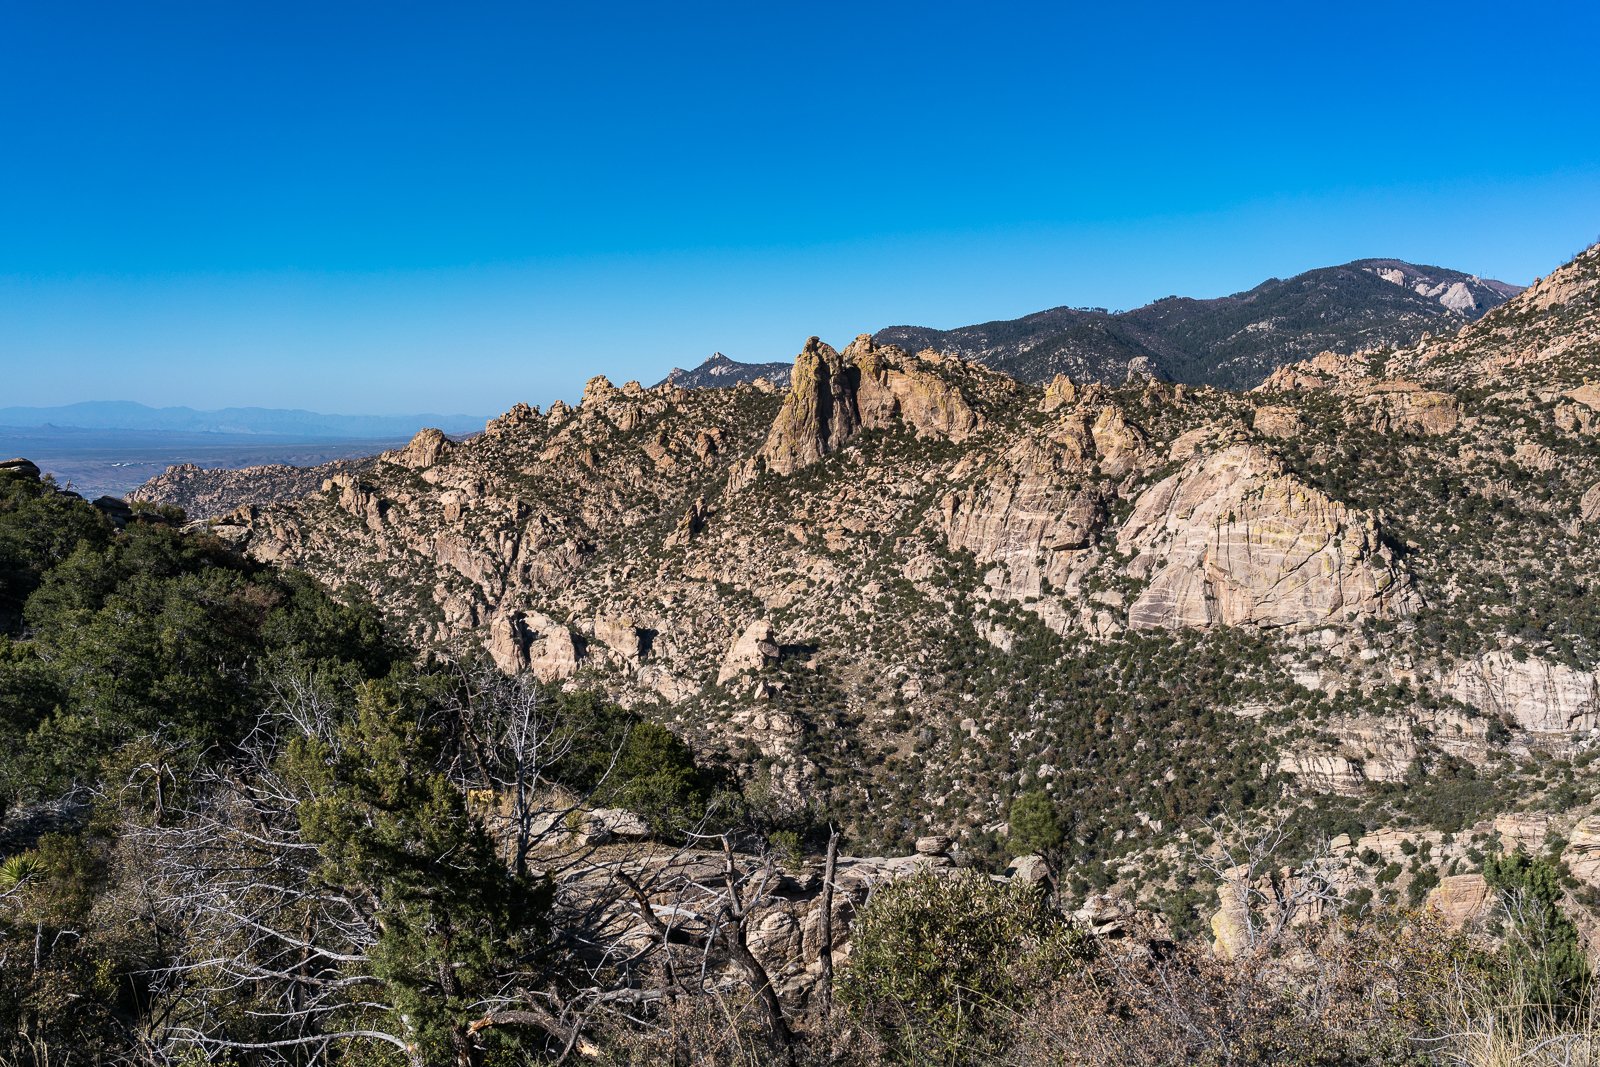 A view from Mount Lemmon  on the right to the Biosphere on the left - from the Esperero Trail between The Window and the junction with the Finger Rock and Ventana Trails. March 2016.